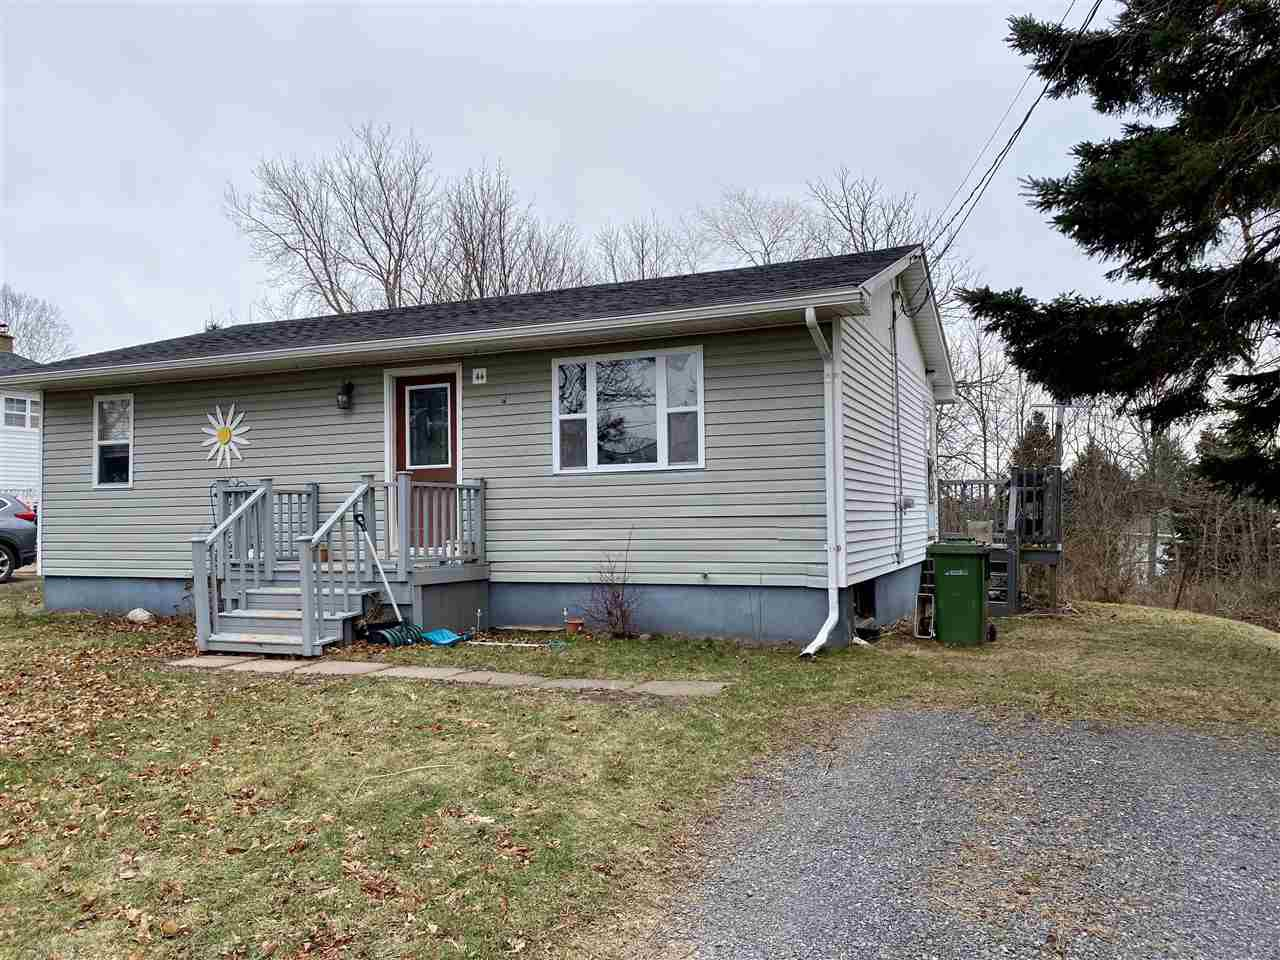 Main Photo: 44 Pine Street in Pictou: 107-Trenton,Westville,Pictou Residential for sale (Northern Region)  : MLS®# 202025908